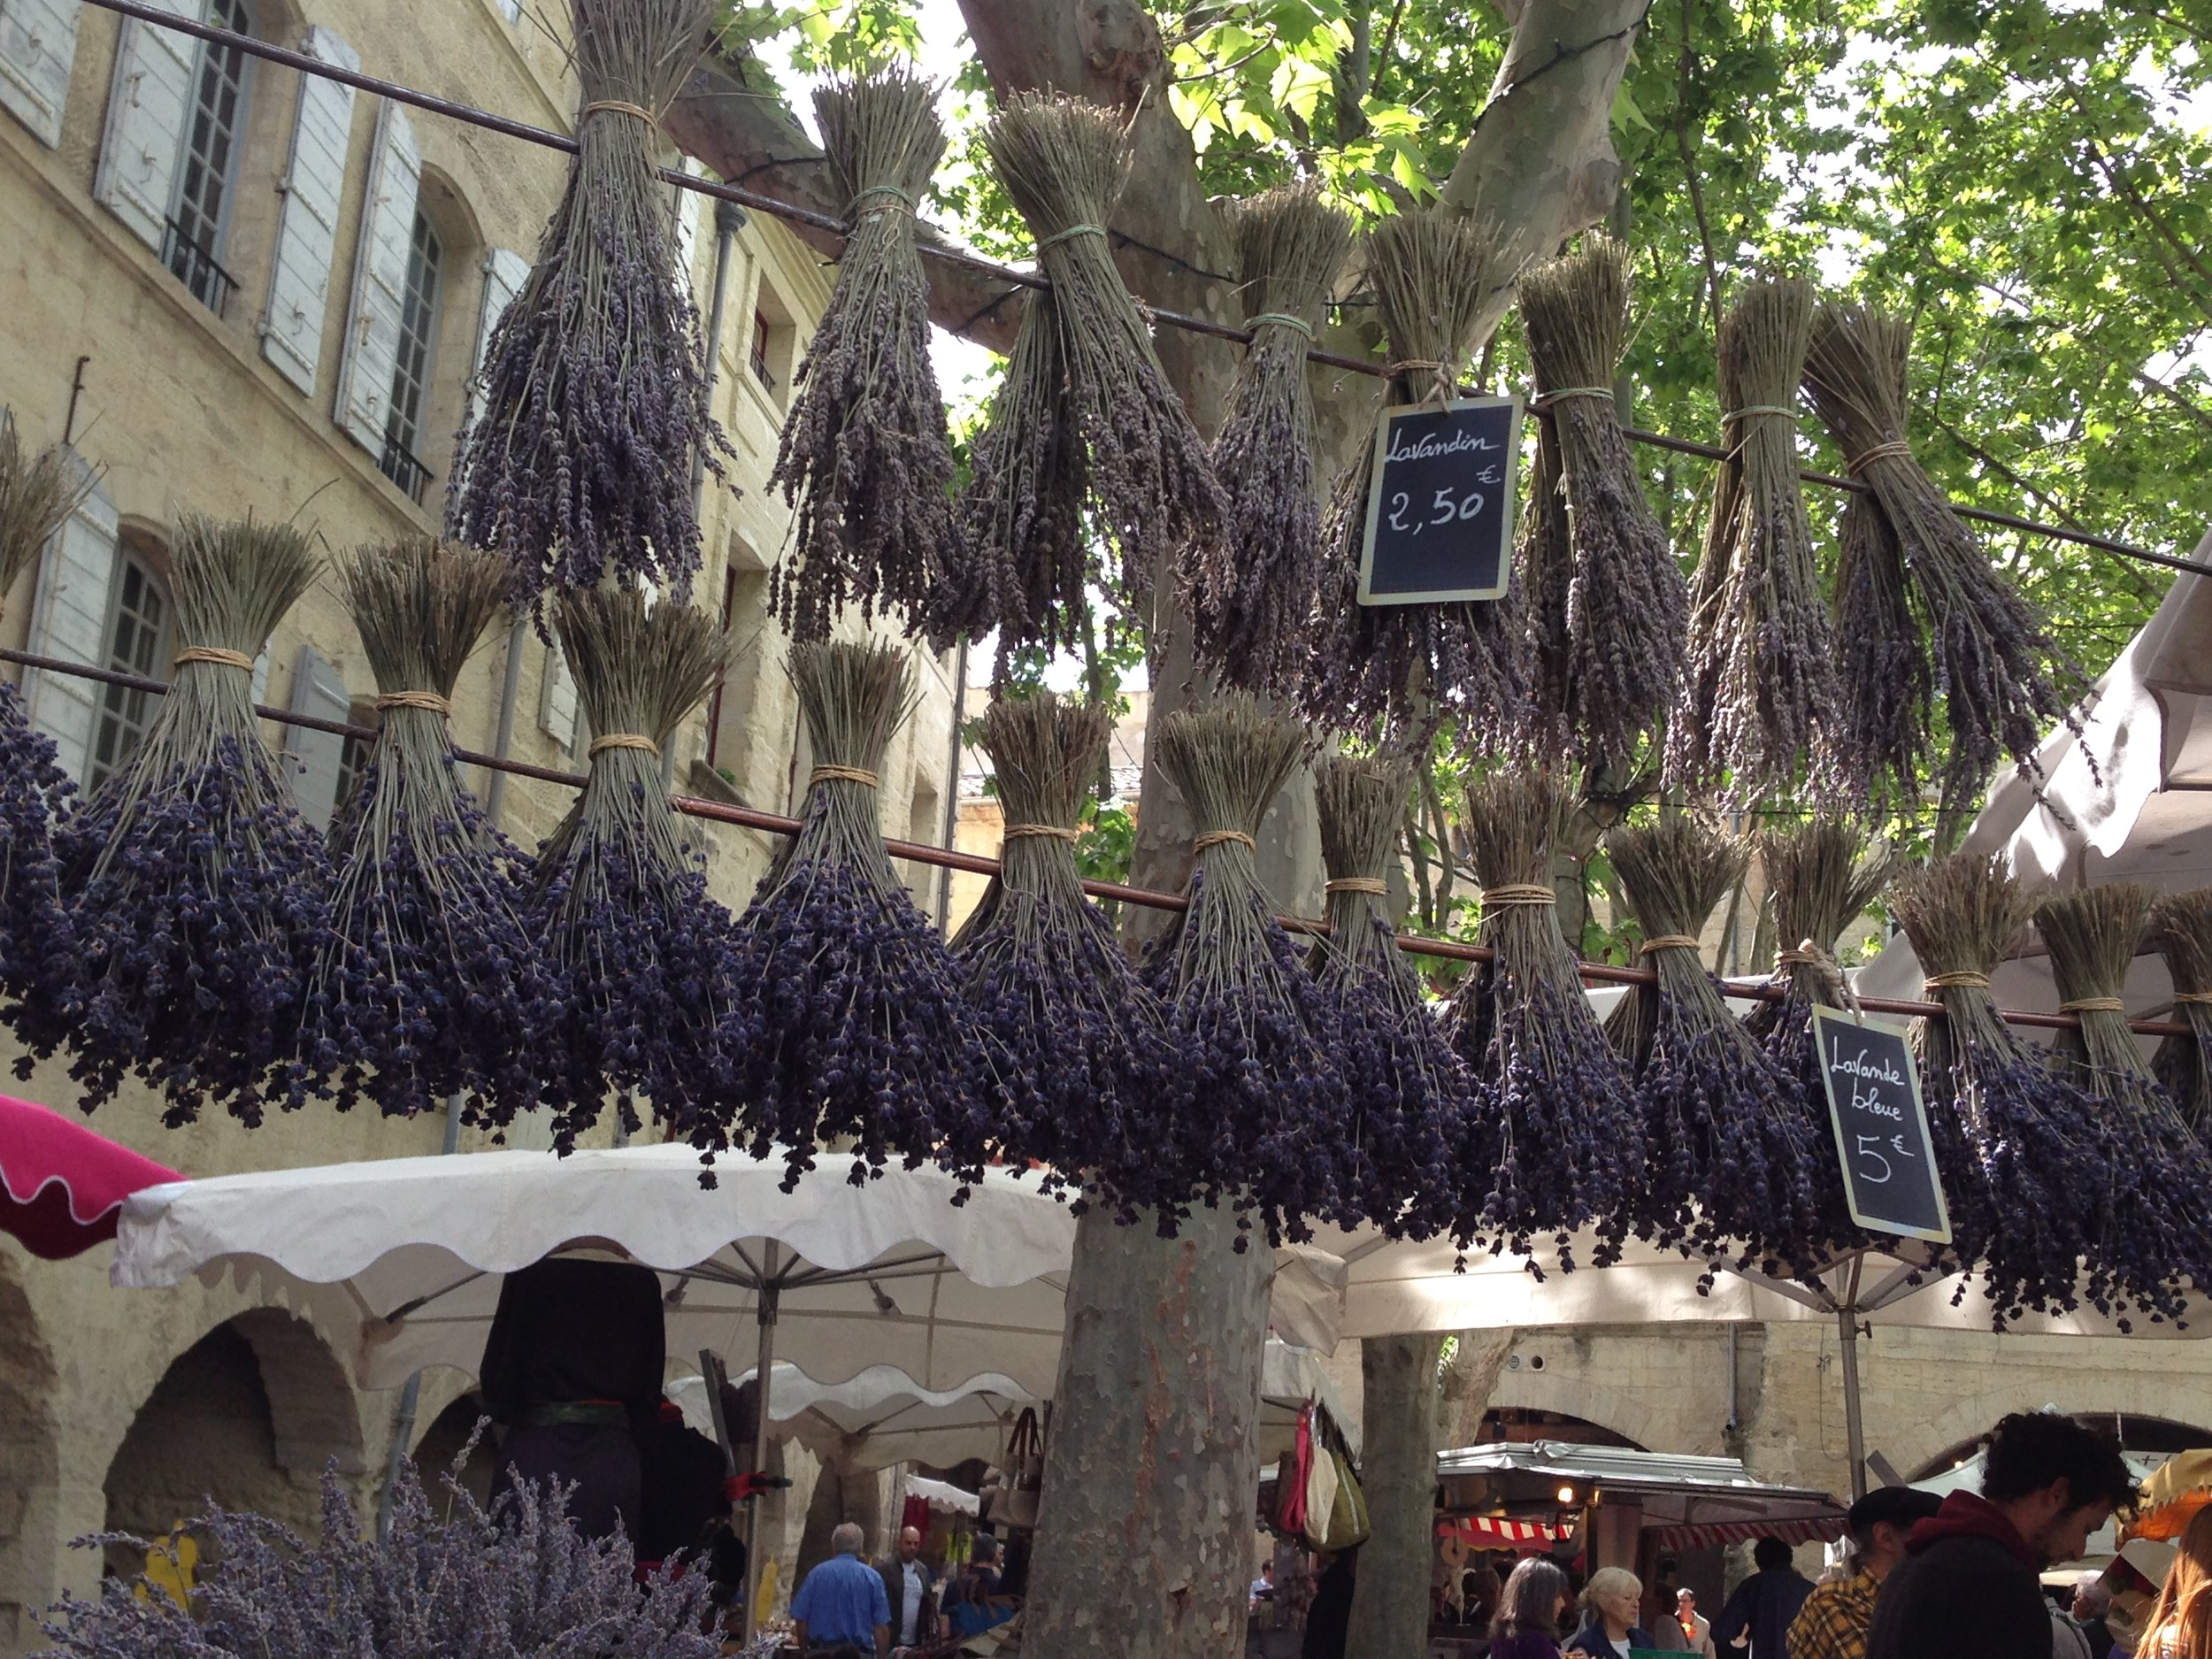 Market in Uzes, France, 2014